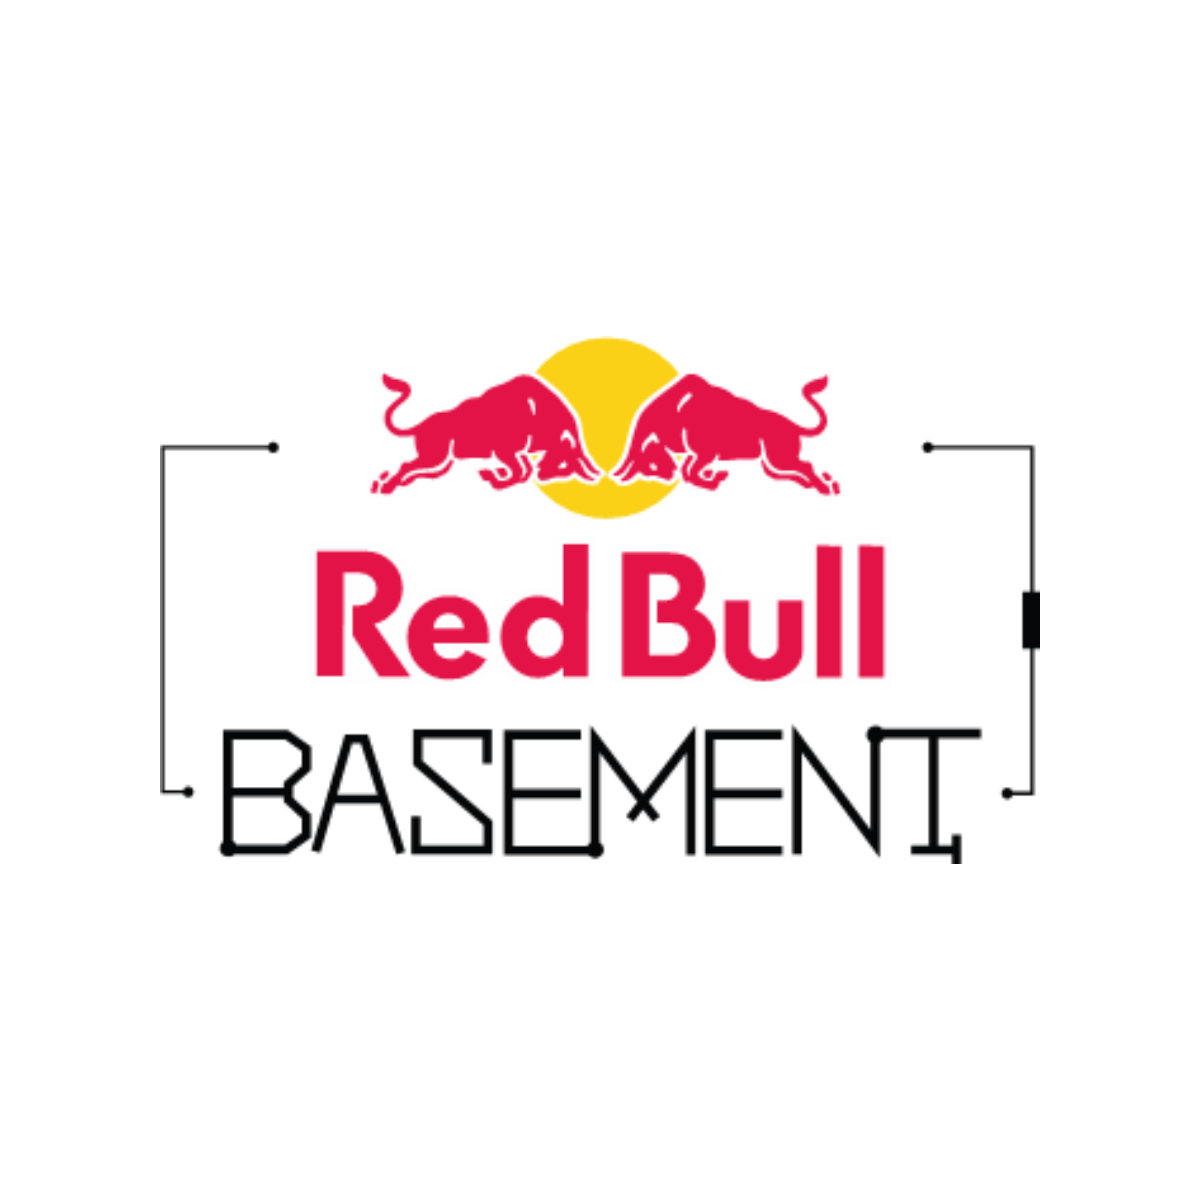 Red Bull Basement 2020 Bewerbungsphase